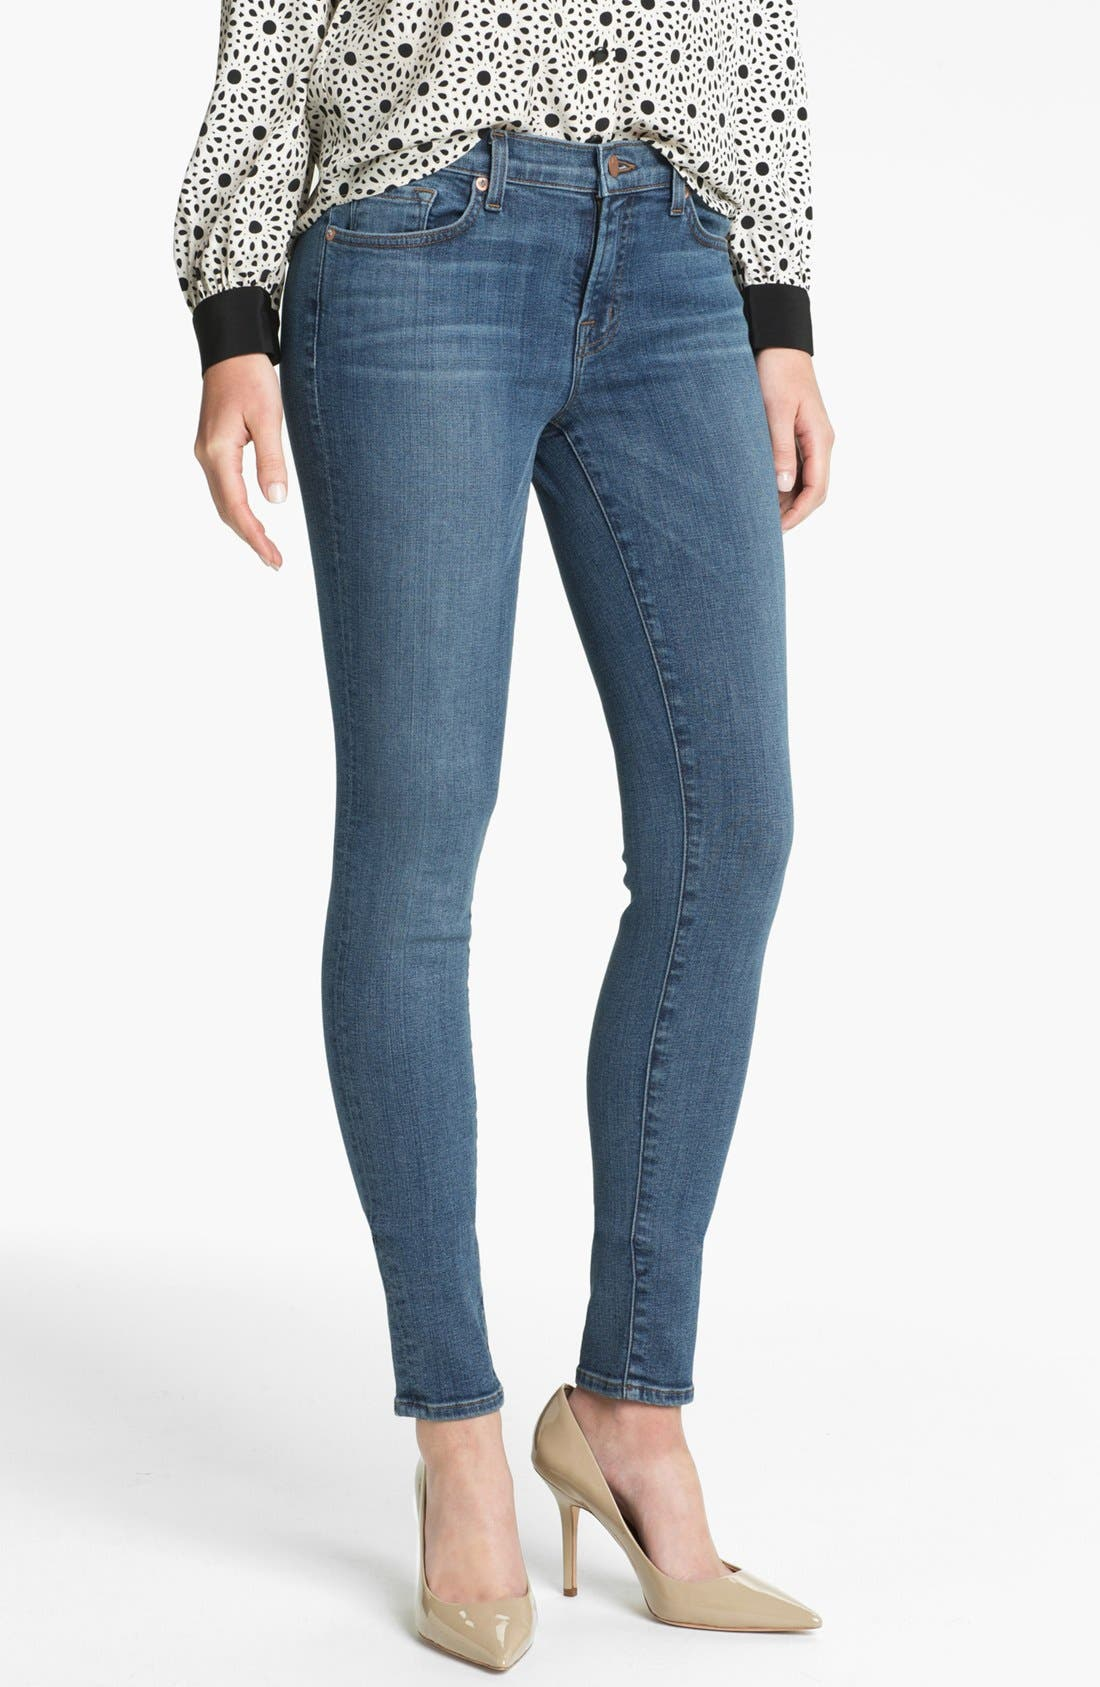 Alternate Image 1 Selected - J Brand '620' Mid-Rise Skinny Jeans (Bayside)